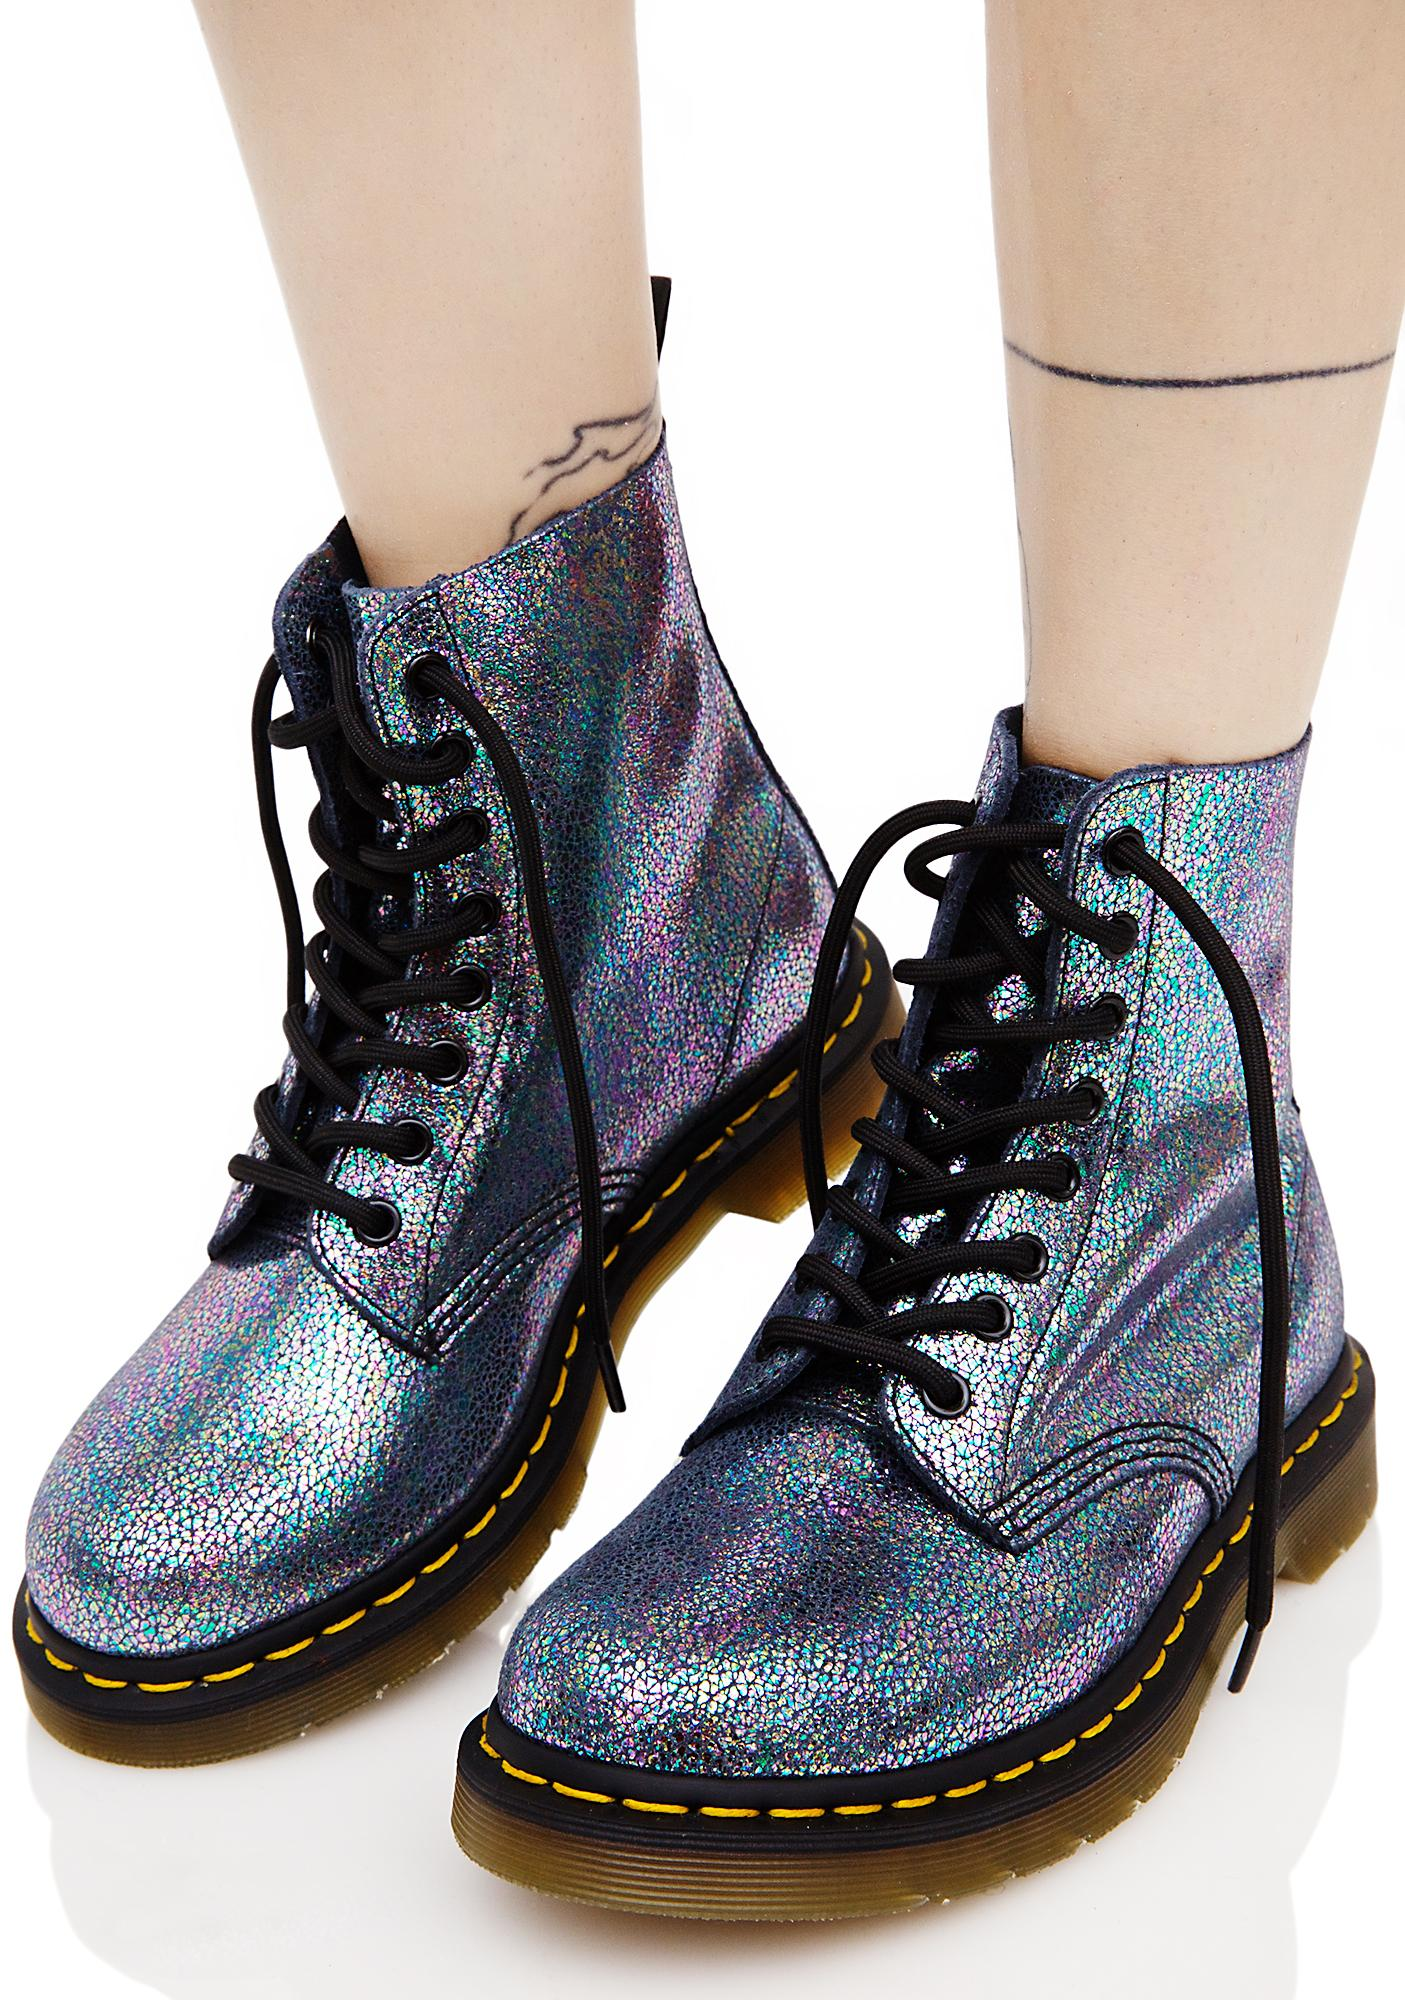 43612be19b54 Dr. Martens Sparkle Pascal 8 Eye Boots | Dolls Kill